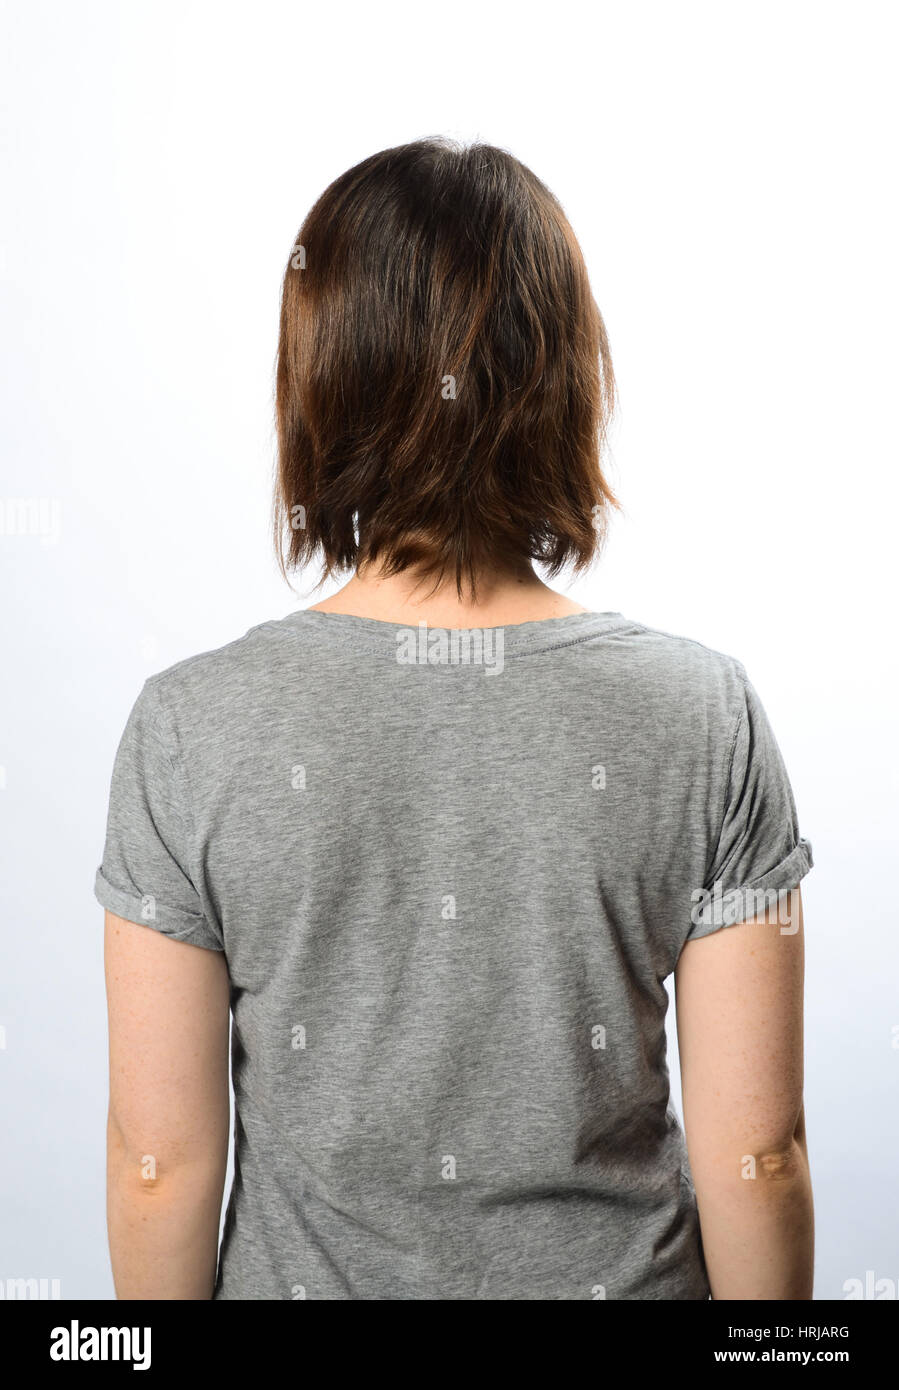 Woman With Back Turned - Stock Image